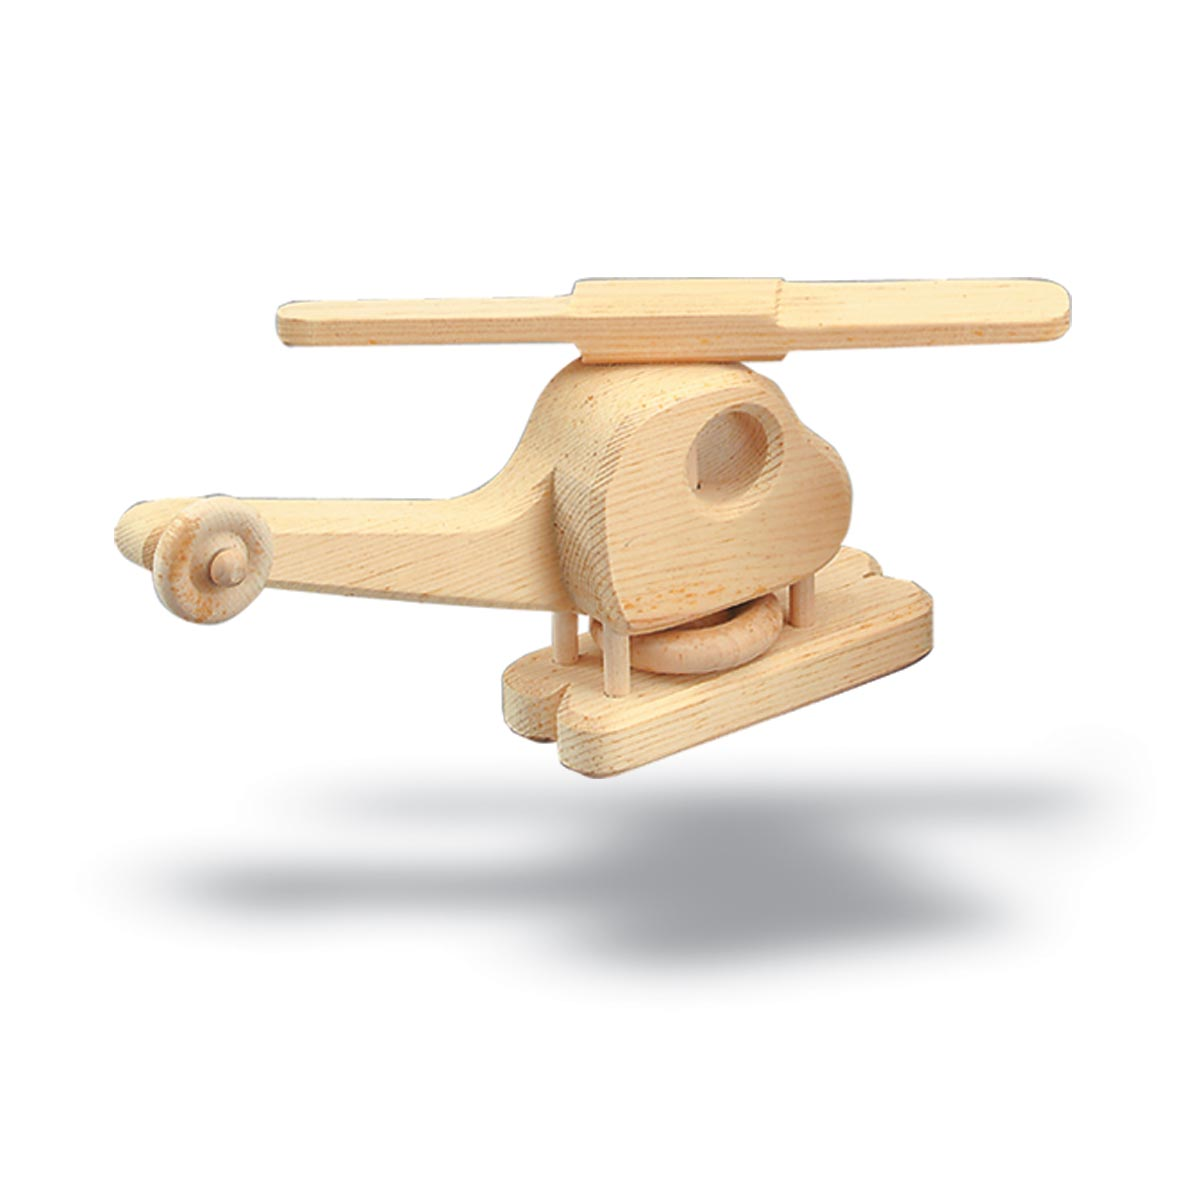 Wooden Trucks Toys And Joys : Patterns kits children s toys up and away